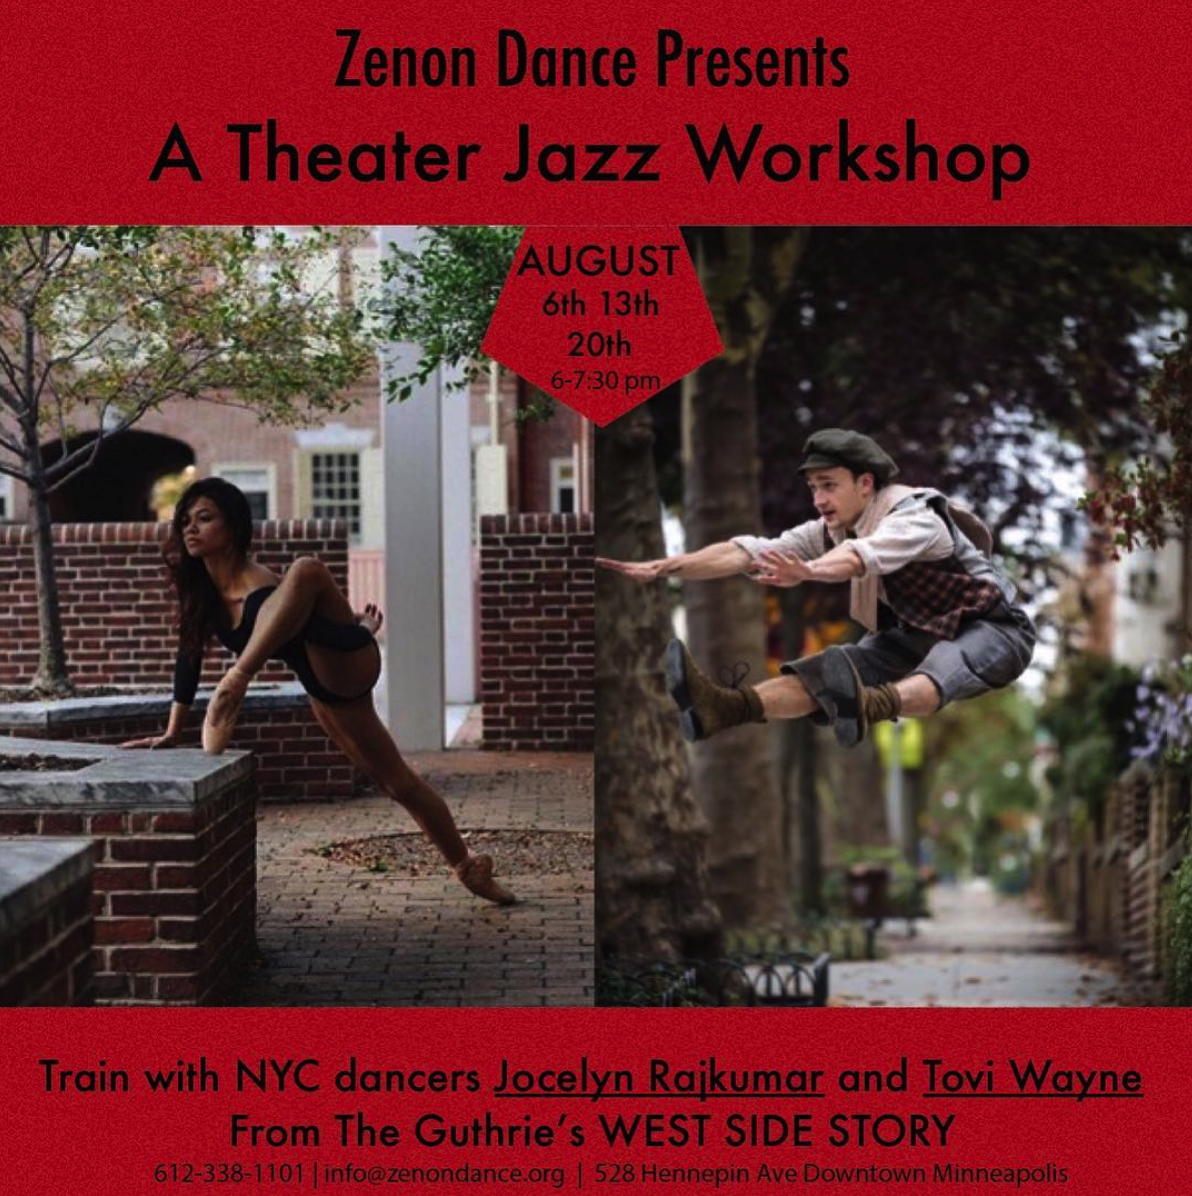 Jazz Workshop - Tovi taught a Jazz Dance workshop series at Zenon Dance in Minneapolis, MN. Tovi collaborated with Jocelyn Rajkumar from Complexions, and brought their love of dance to a new and excited class of dancers. The class consisted of old and new school styles of jazz dance.